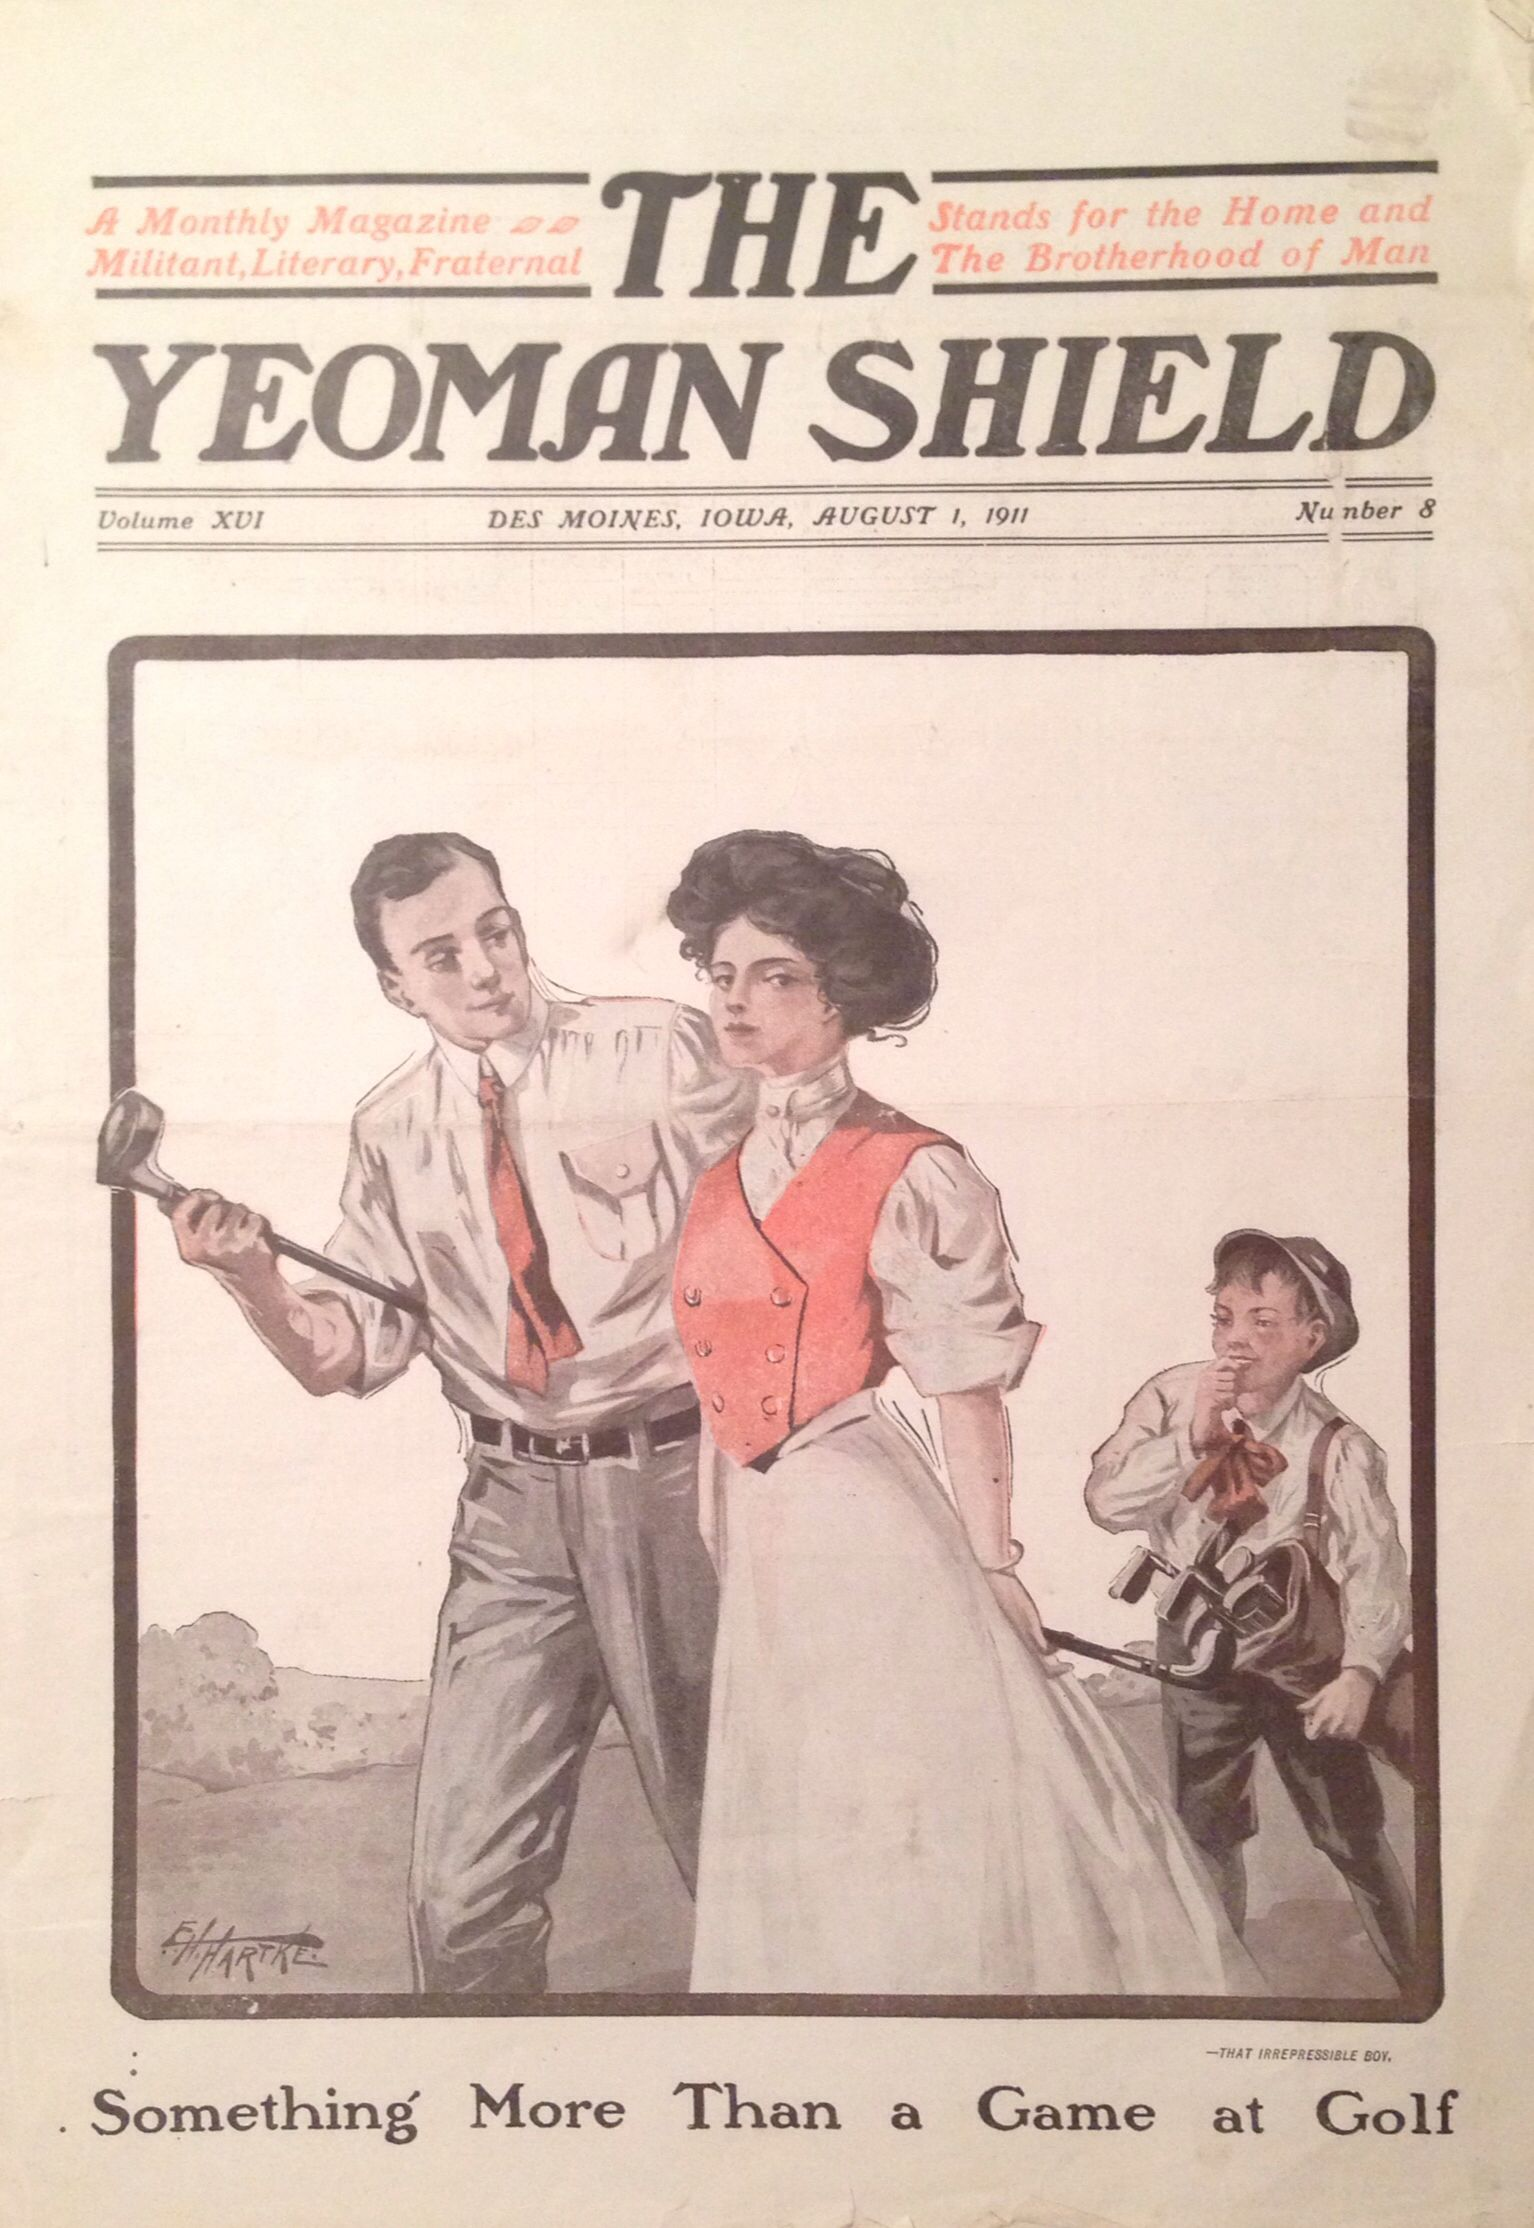 The Yeoman Shield Magazine 1 Aug 1911 Golfer Cover